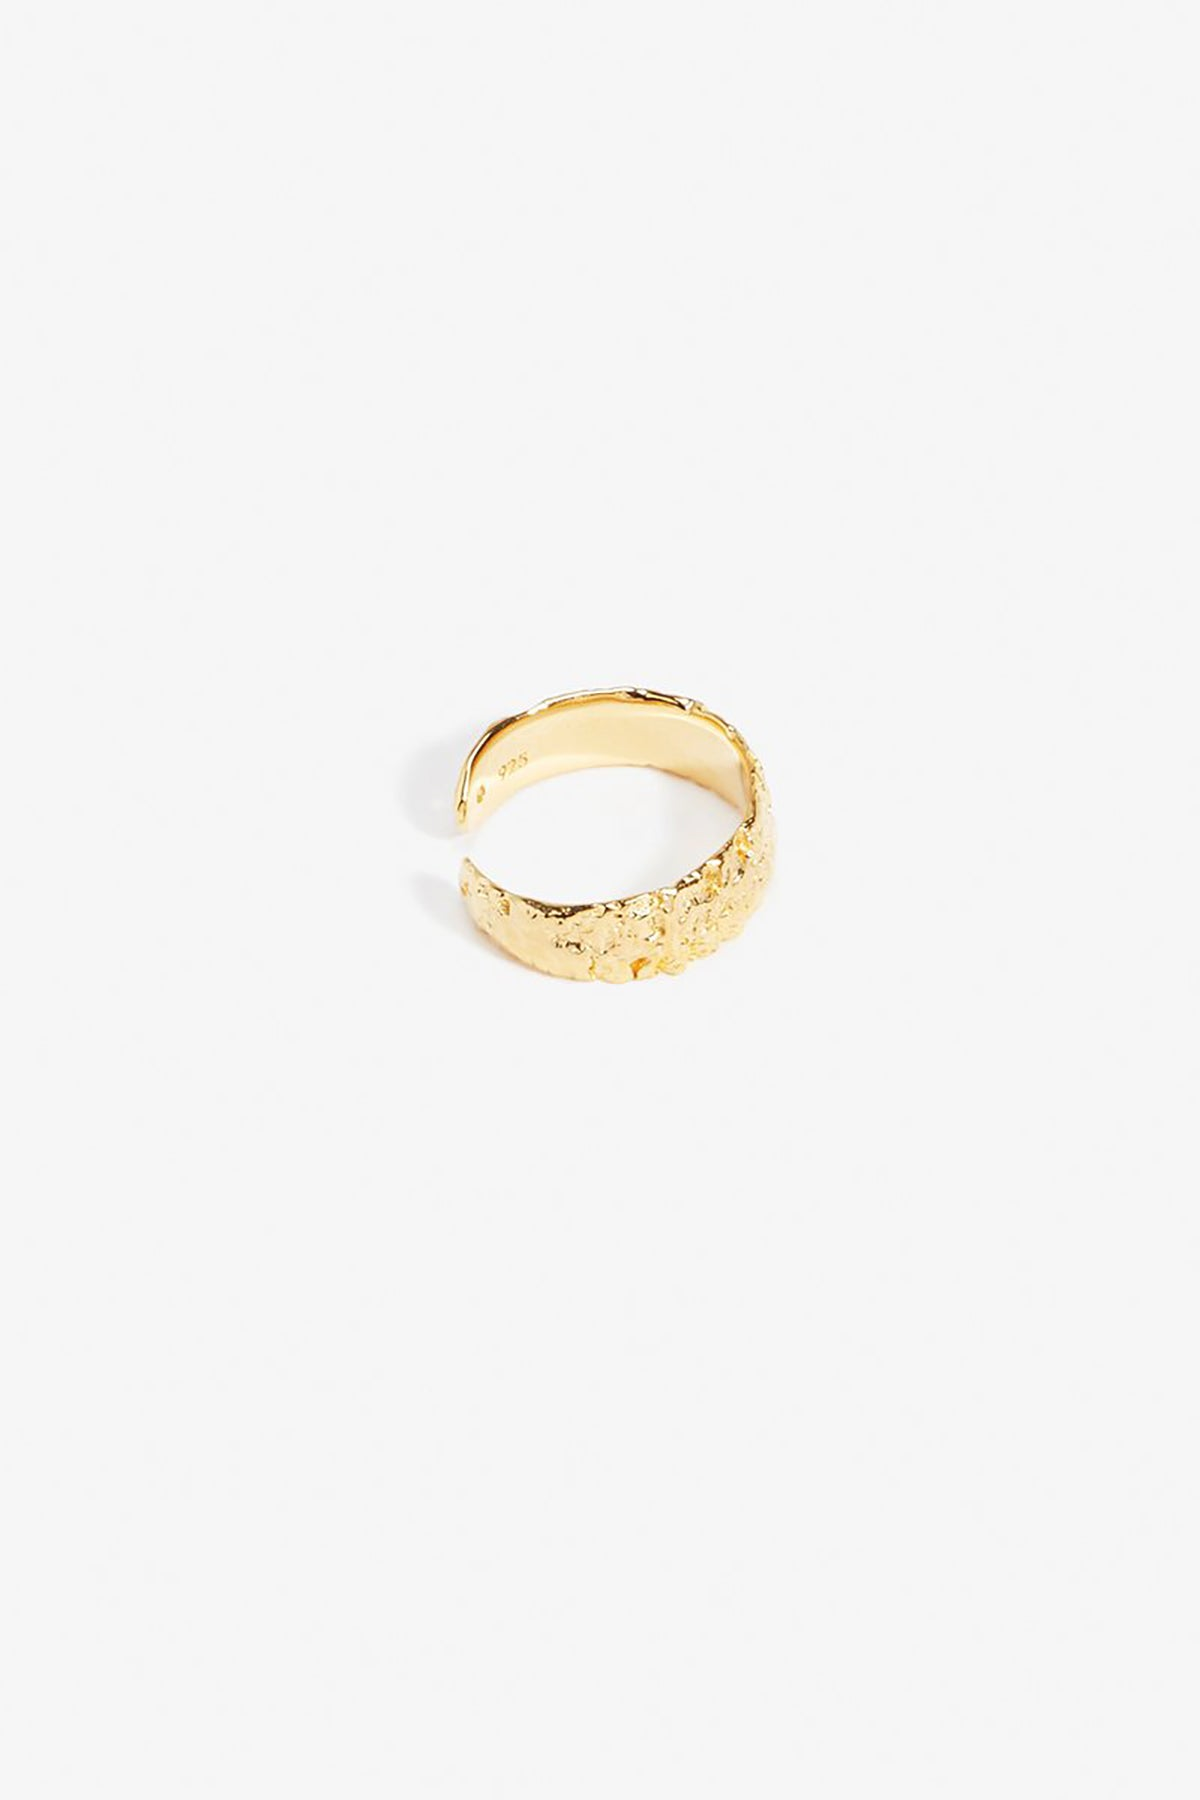 Lucy Folk Anchovy Ring - Small